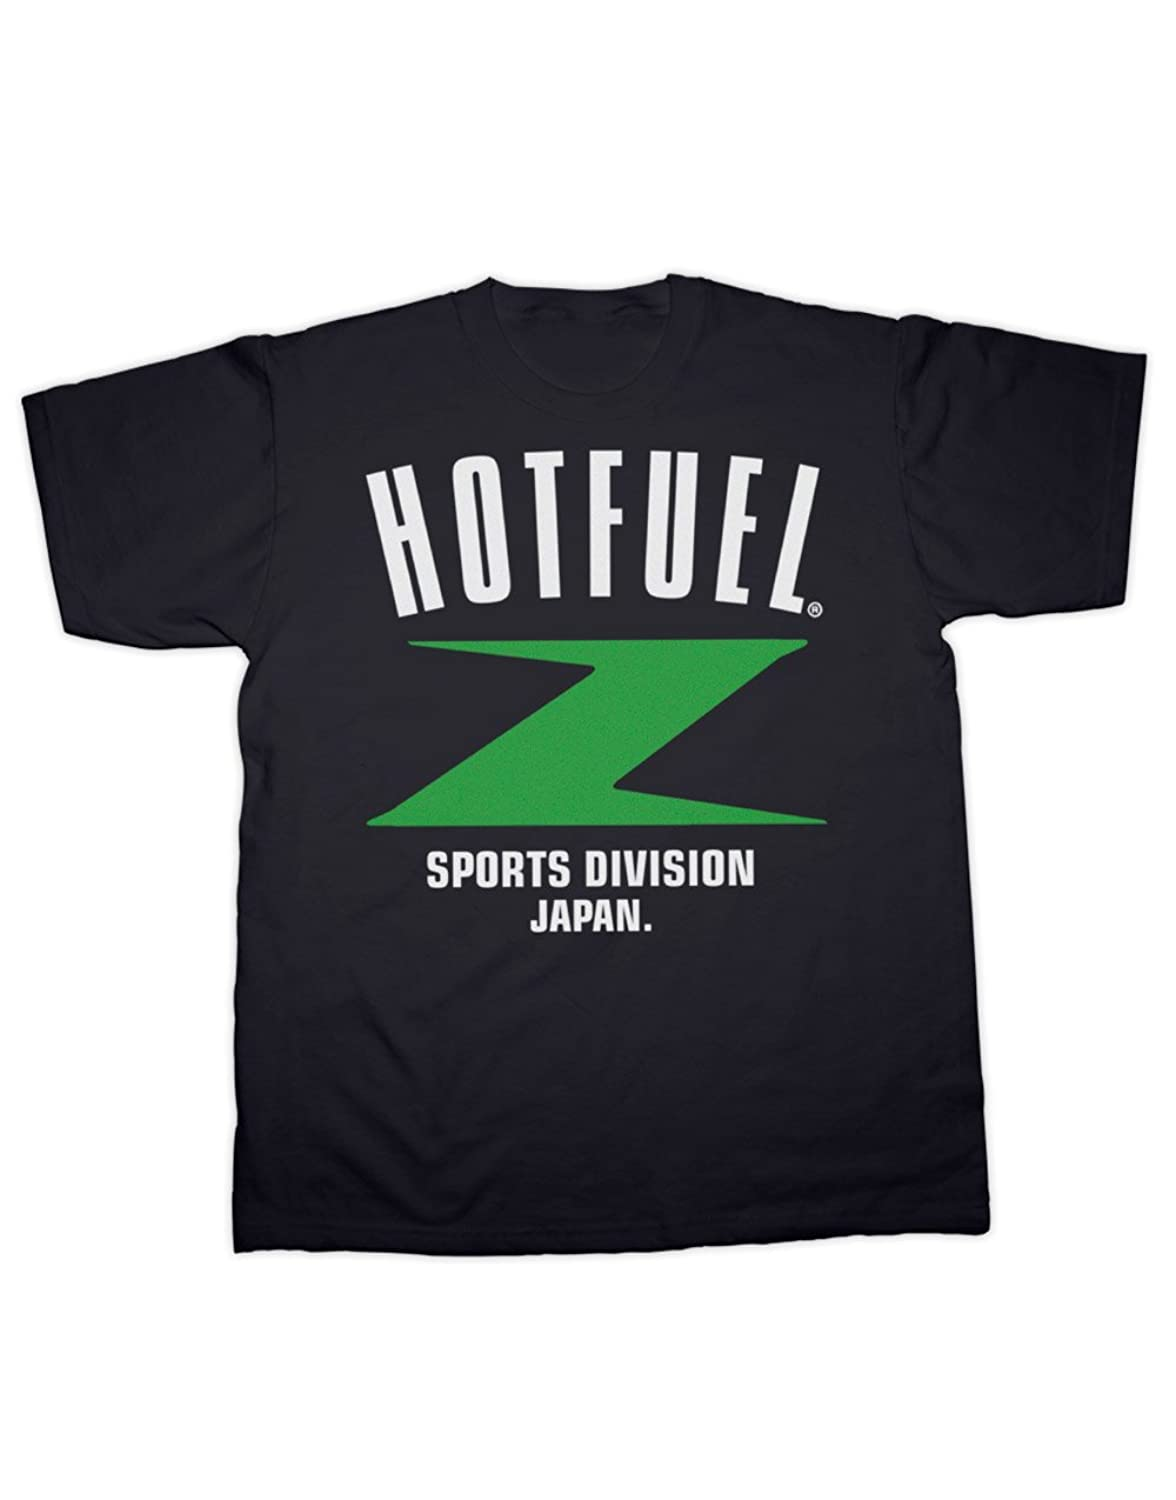 Hotfuel Z Sports Division Japan T-Shirt. All Sizes (Small - 5XL)